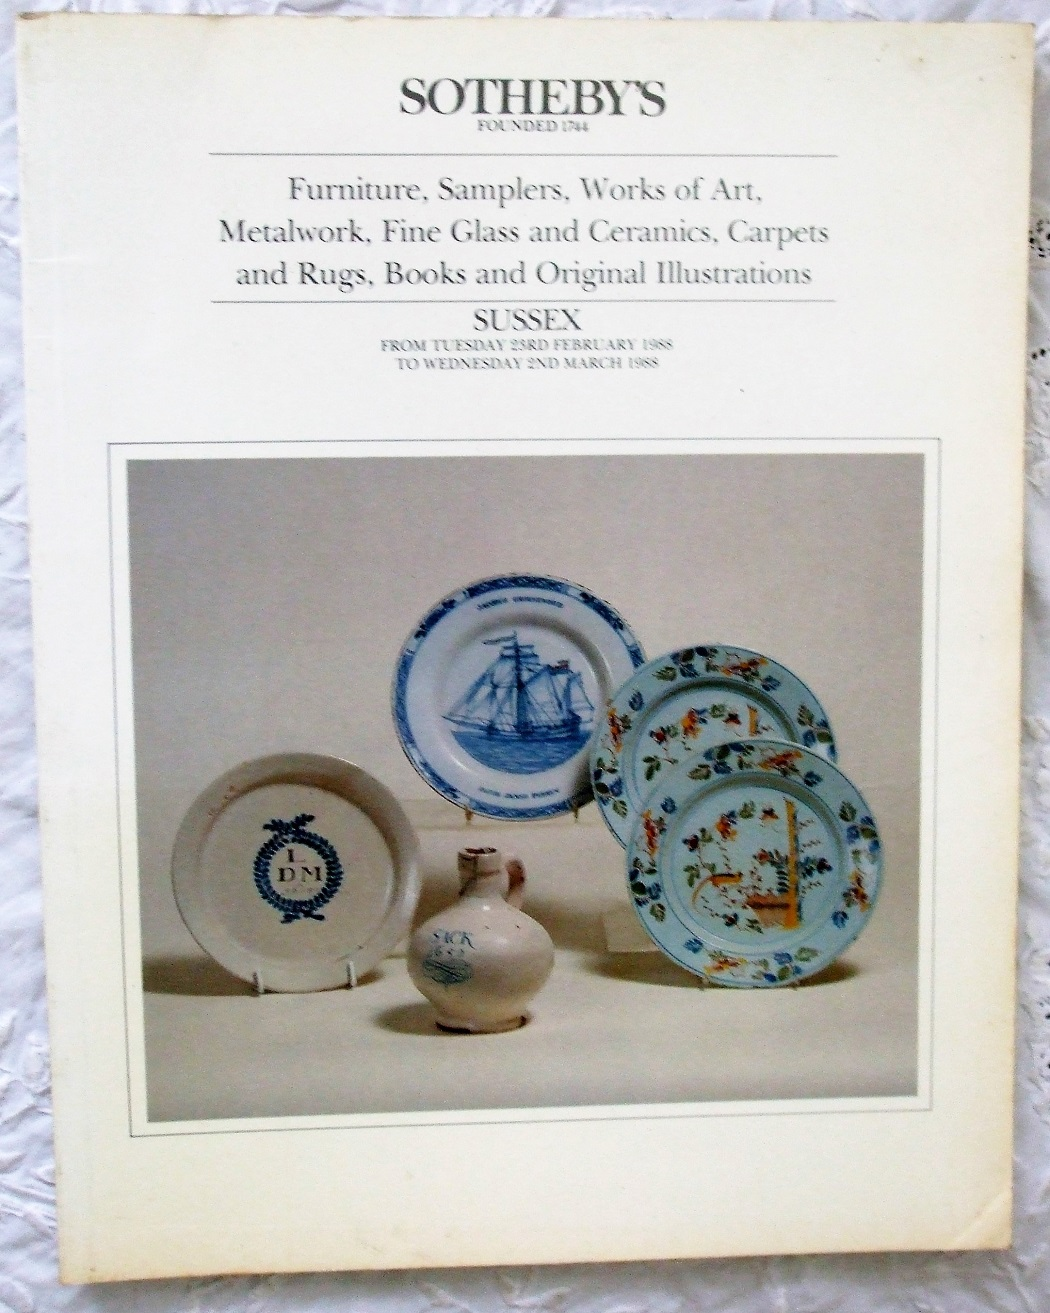 S Antiques and Collectables S 23. 02. to 02. 03. 1988